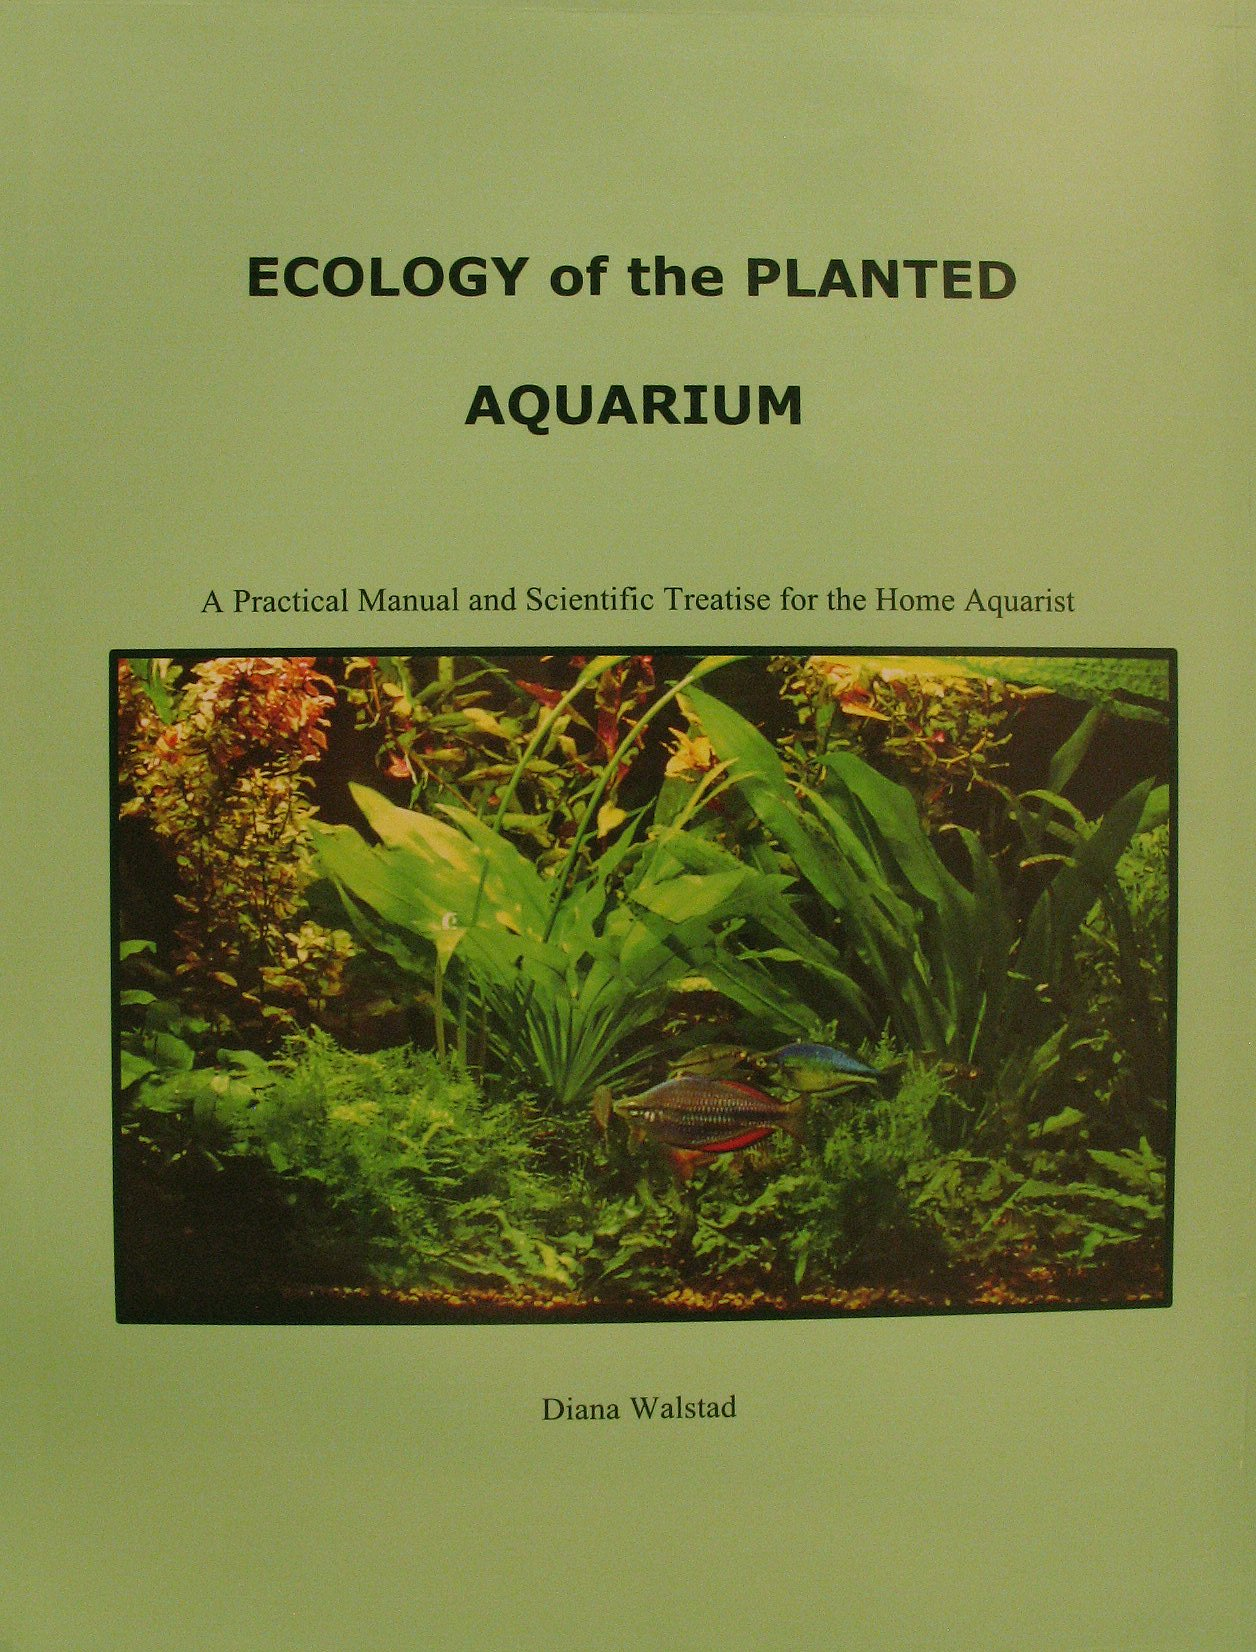 Ecology of the Planted Aquarium: A Practical Manual and Scientific Treatise for the Home Aquarist by Echinodorus Publishing